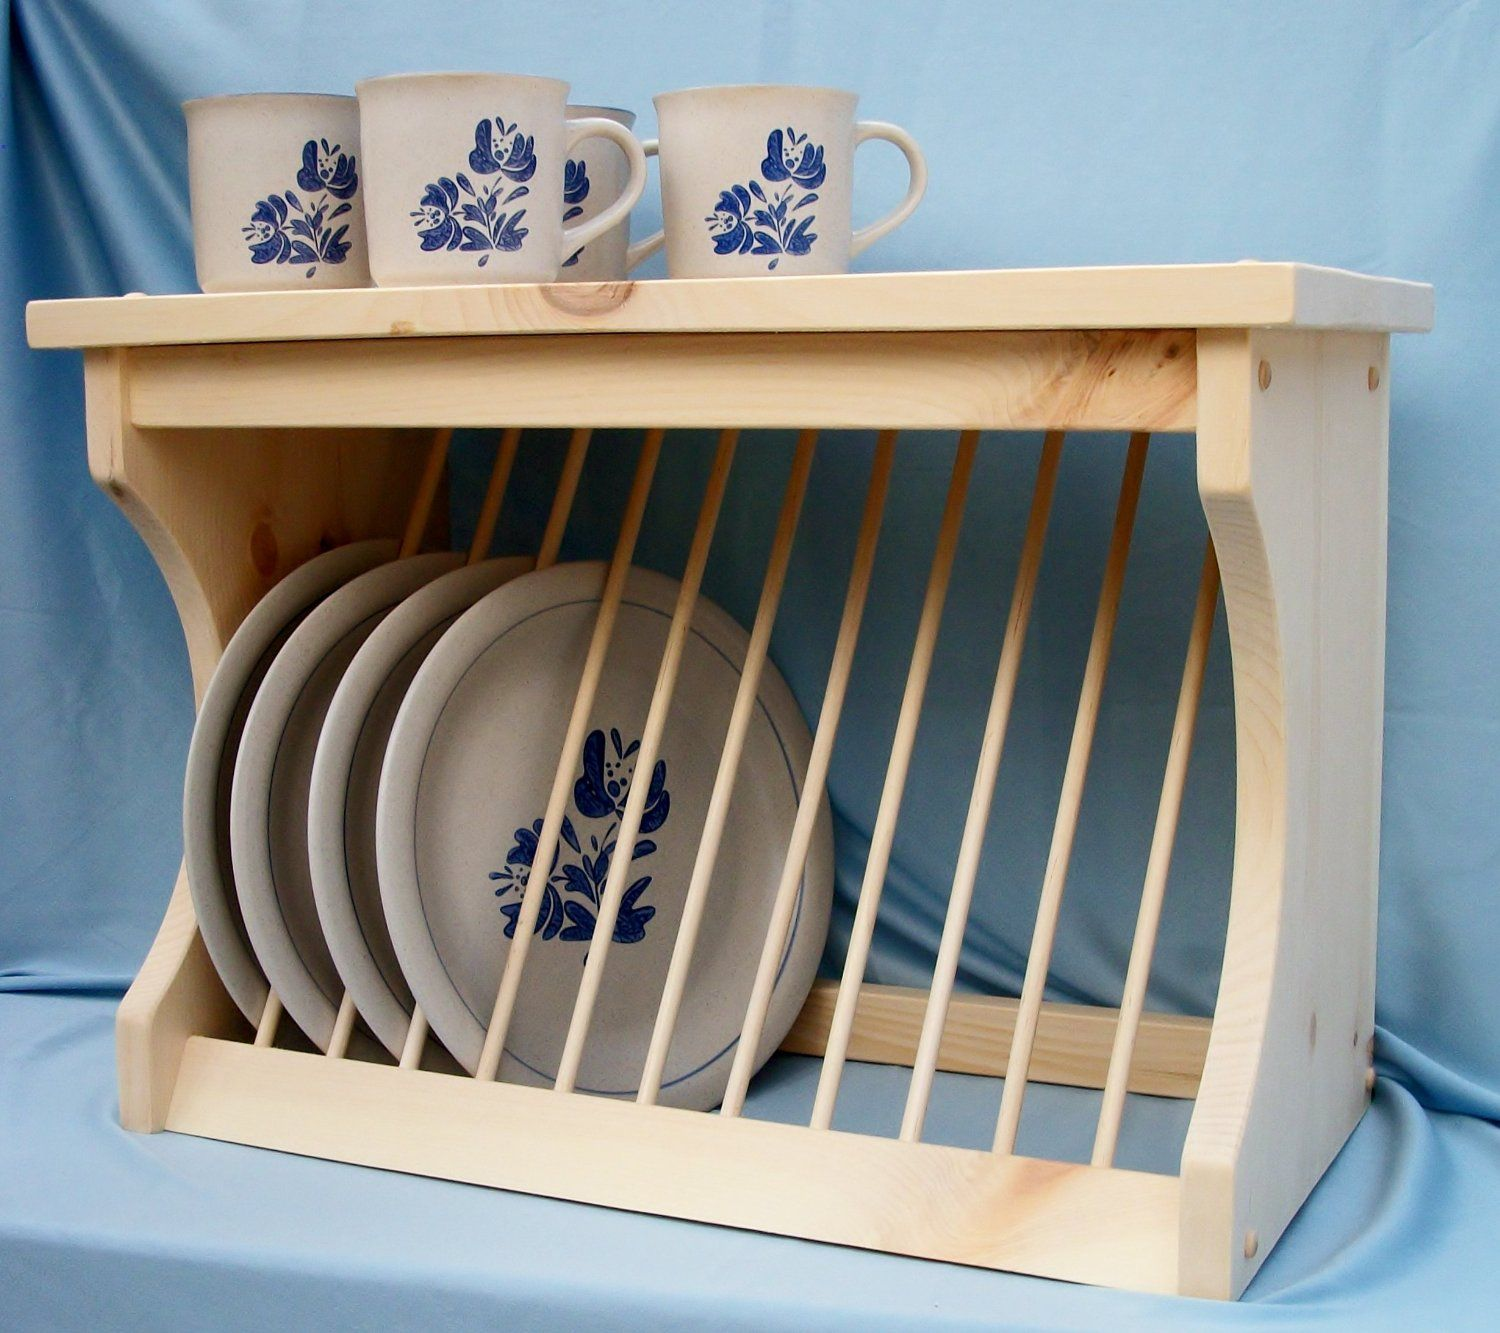 Kitchen Cabinets Plate Rack: Amazon.com: Wood Plate Rack Dish Organzier: Home & Kitchen